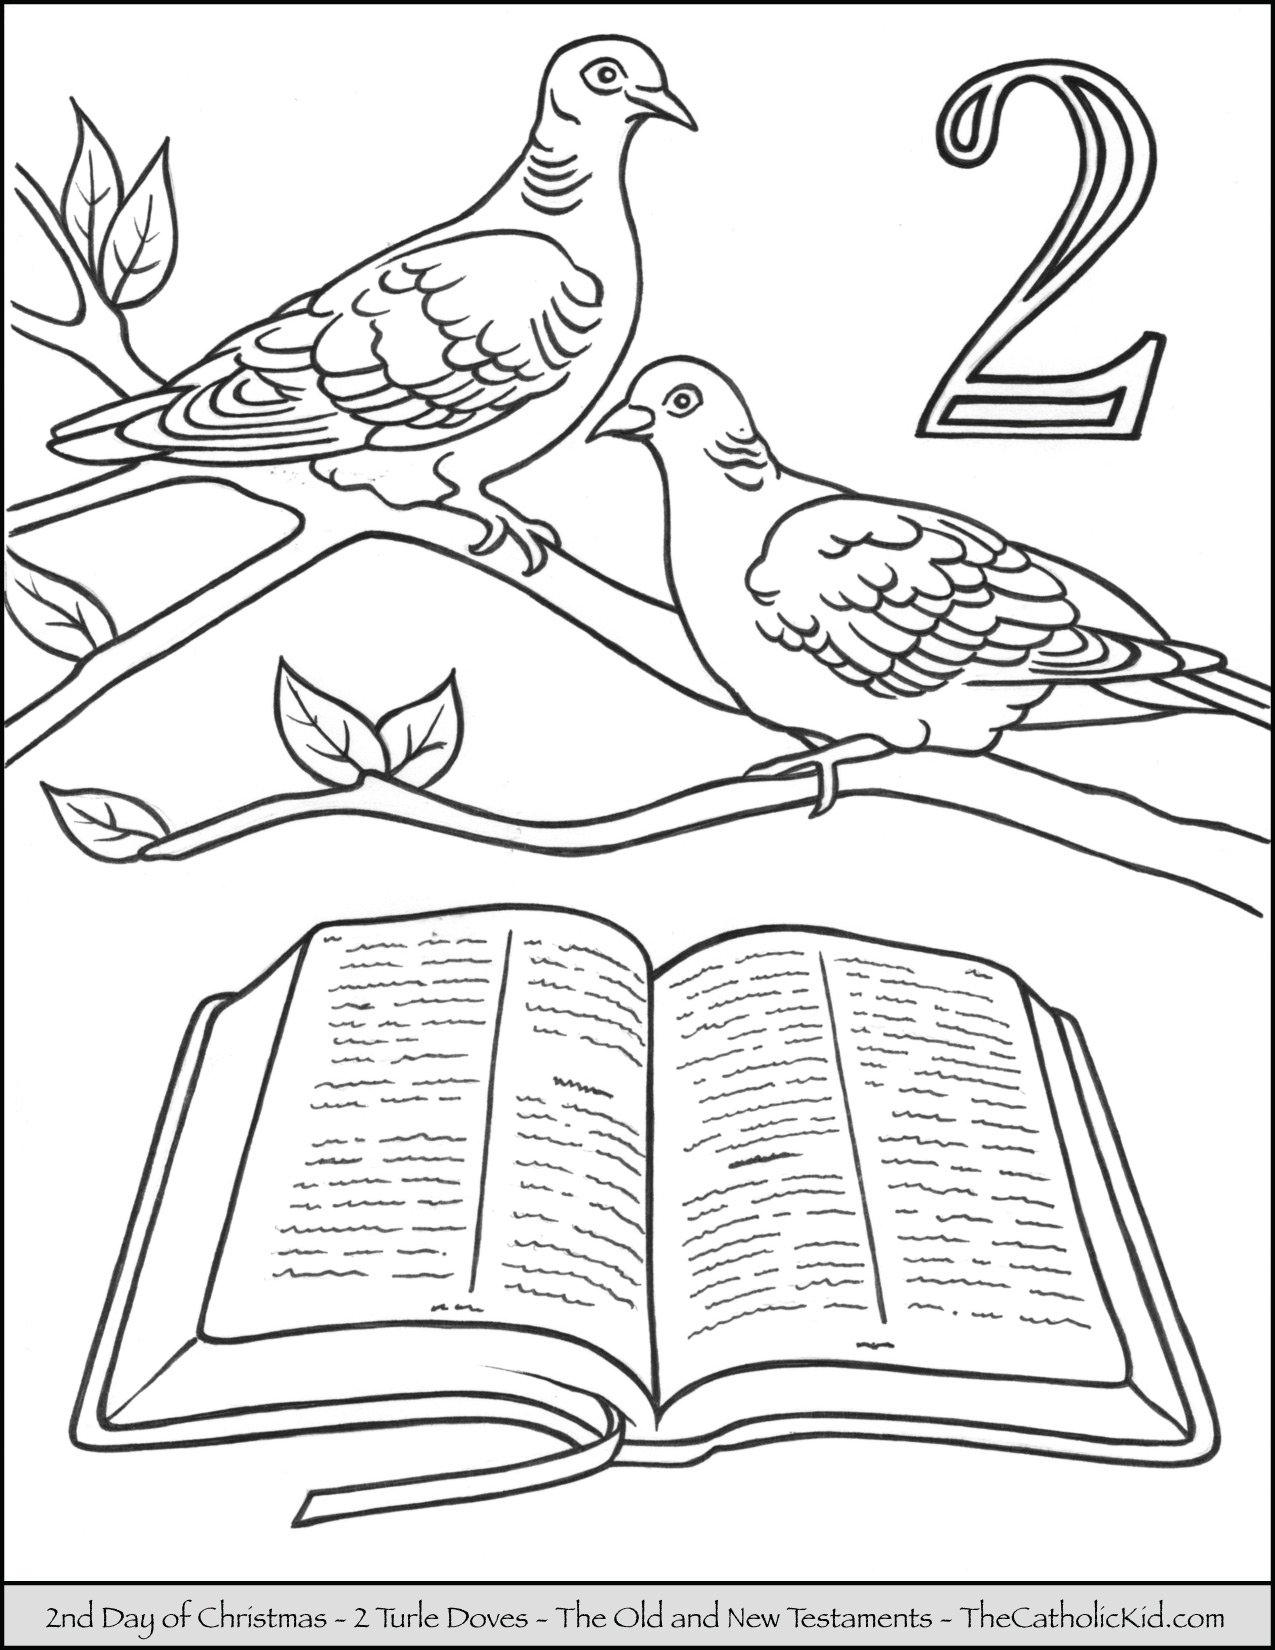 12 days of christmas coloring pages 12 Days of Christmas Coloring Pages   TheCatholicKid.com 12 days of christmas coloring pages